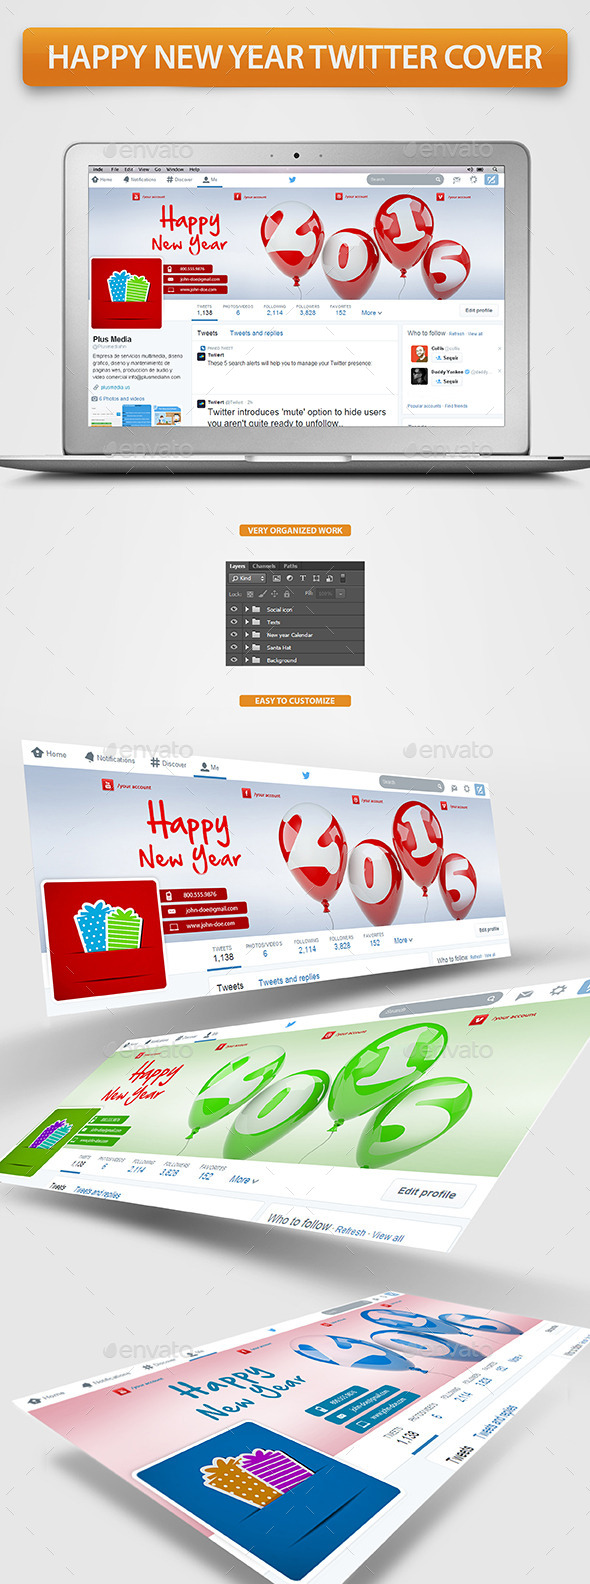 GraphicRiver Happy New Year Twitter Cover 9613495